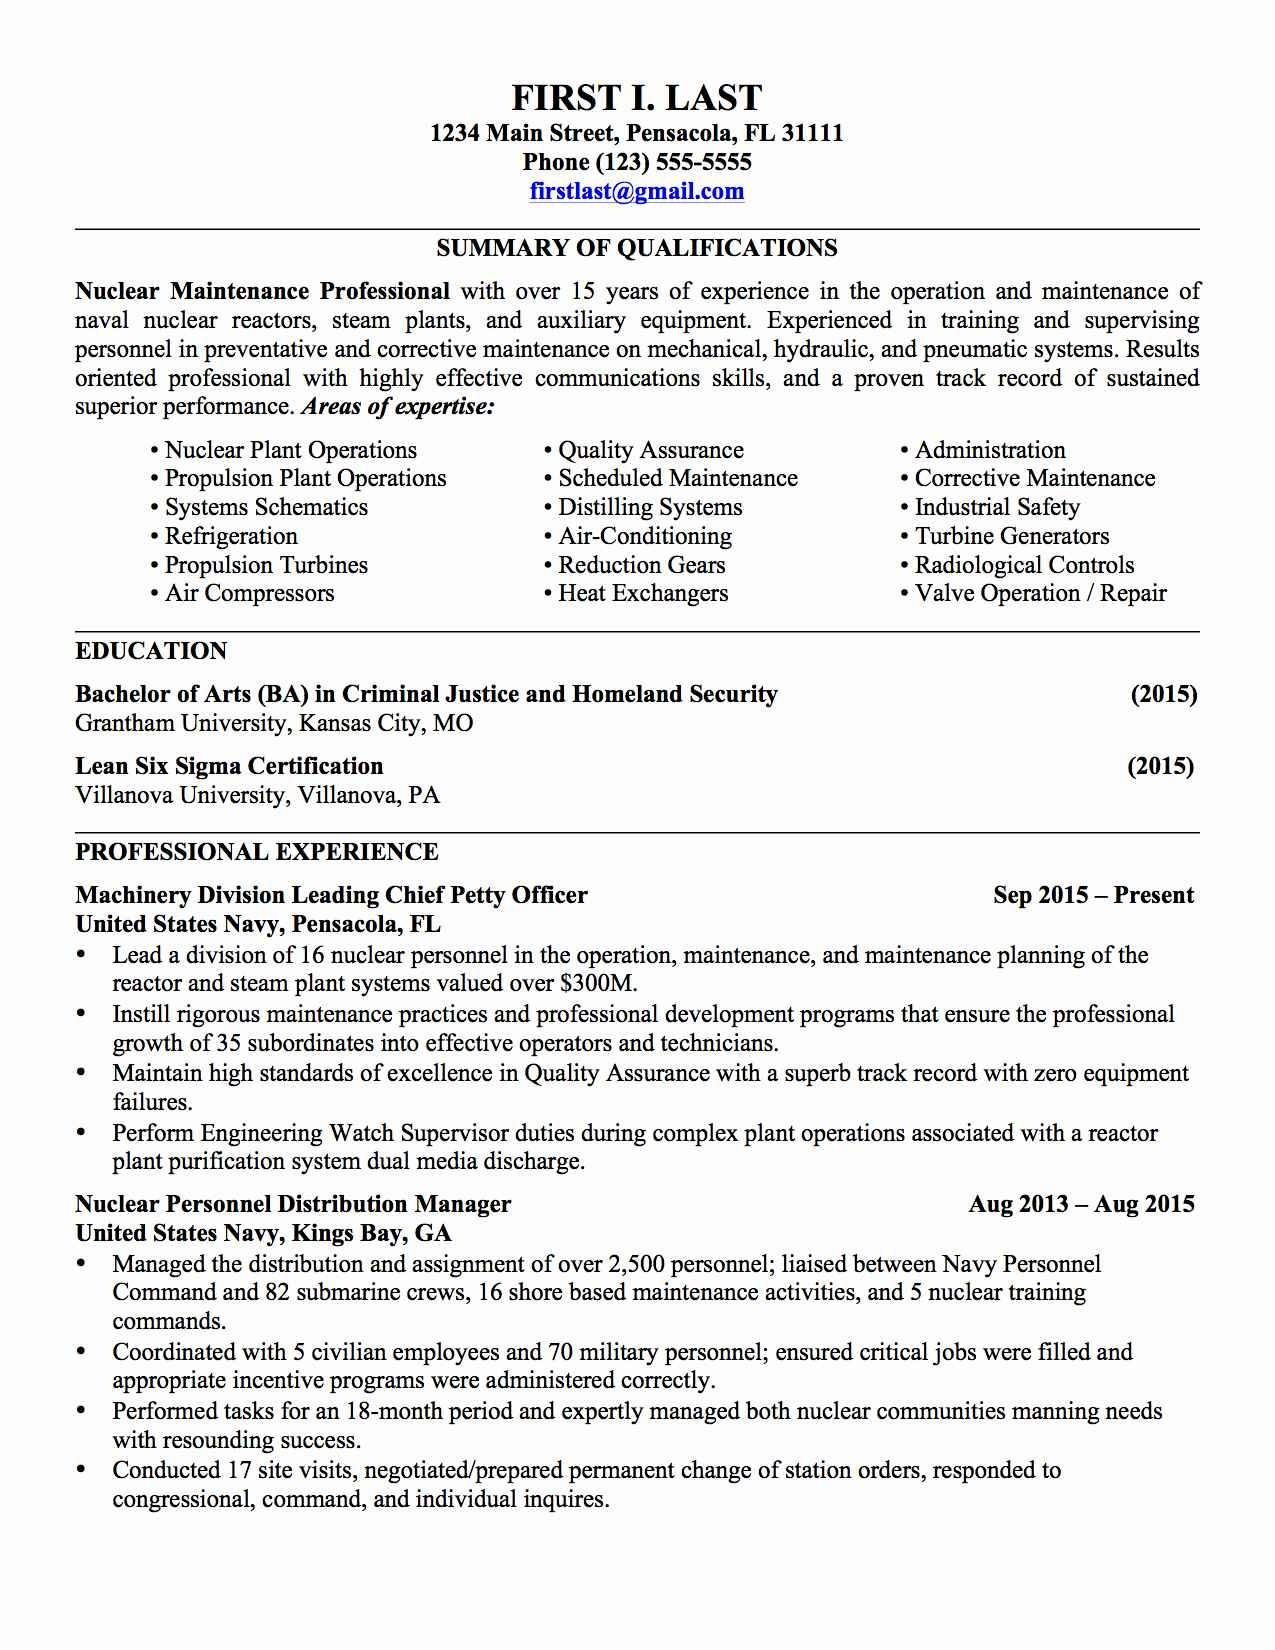 76 Great Resume For Retired Person for Images